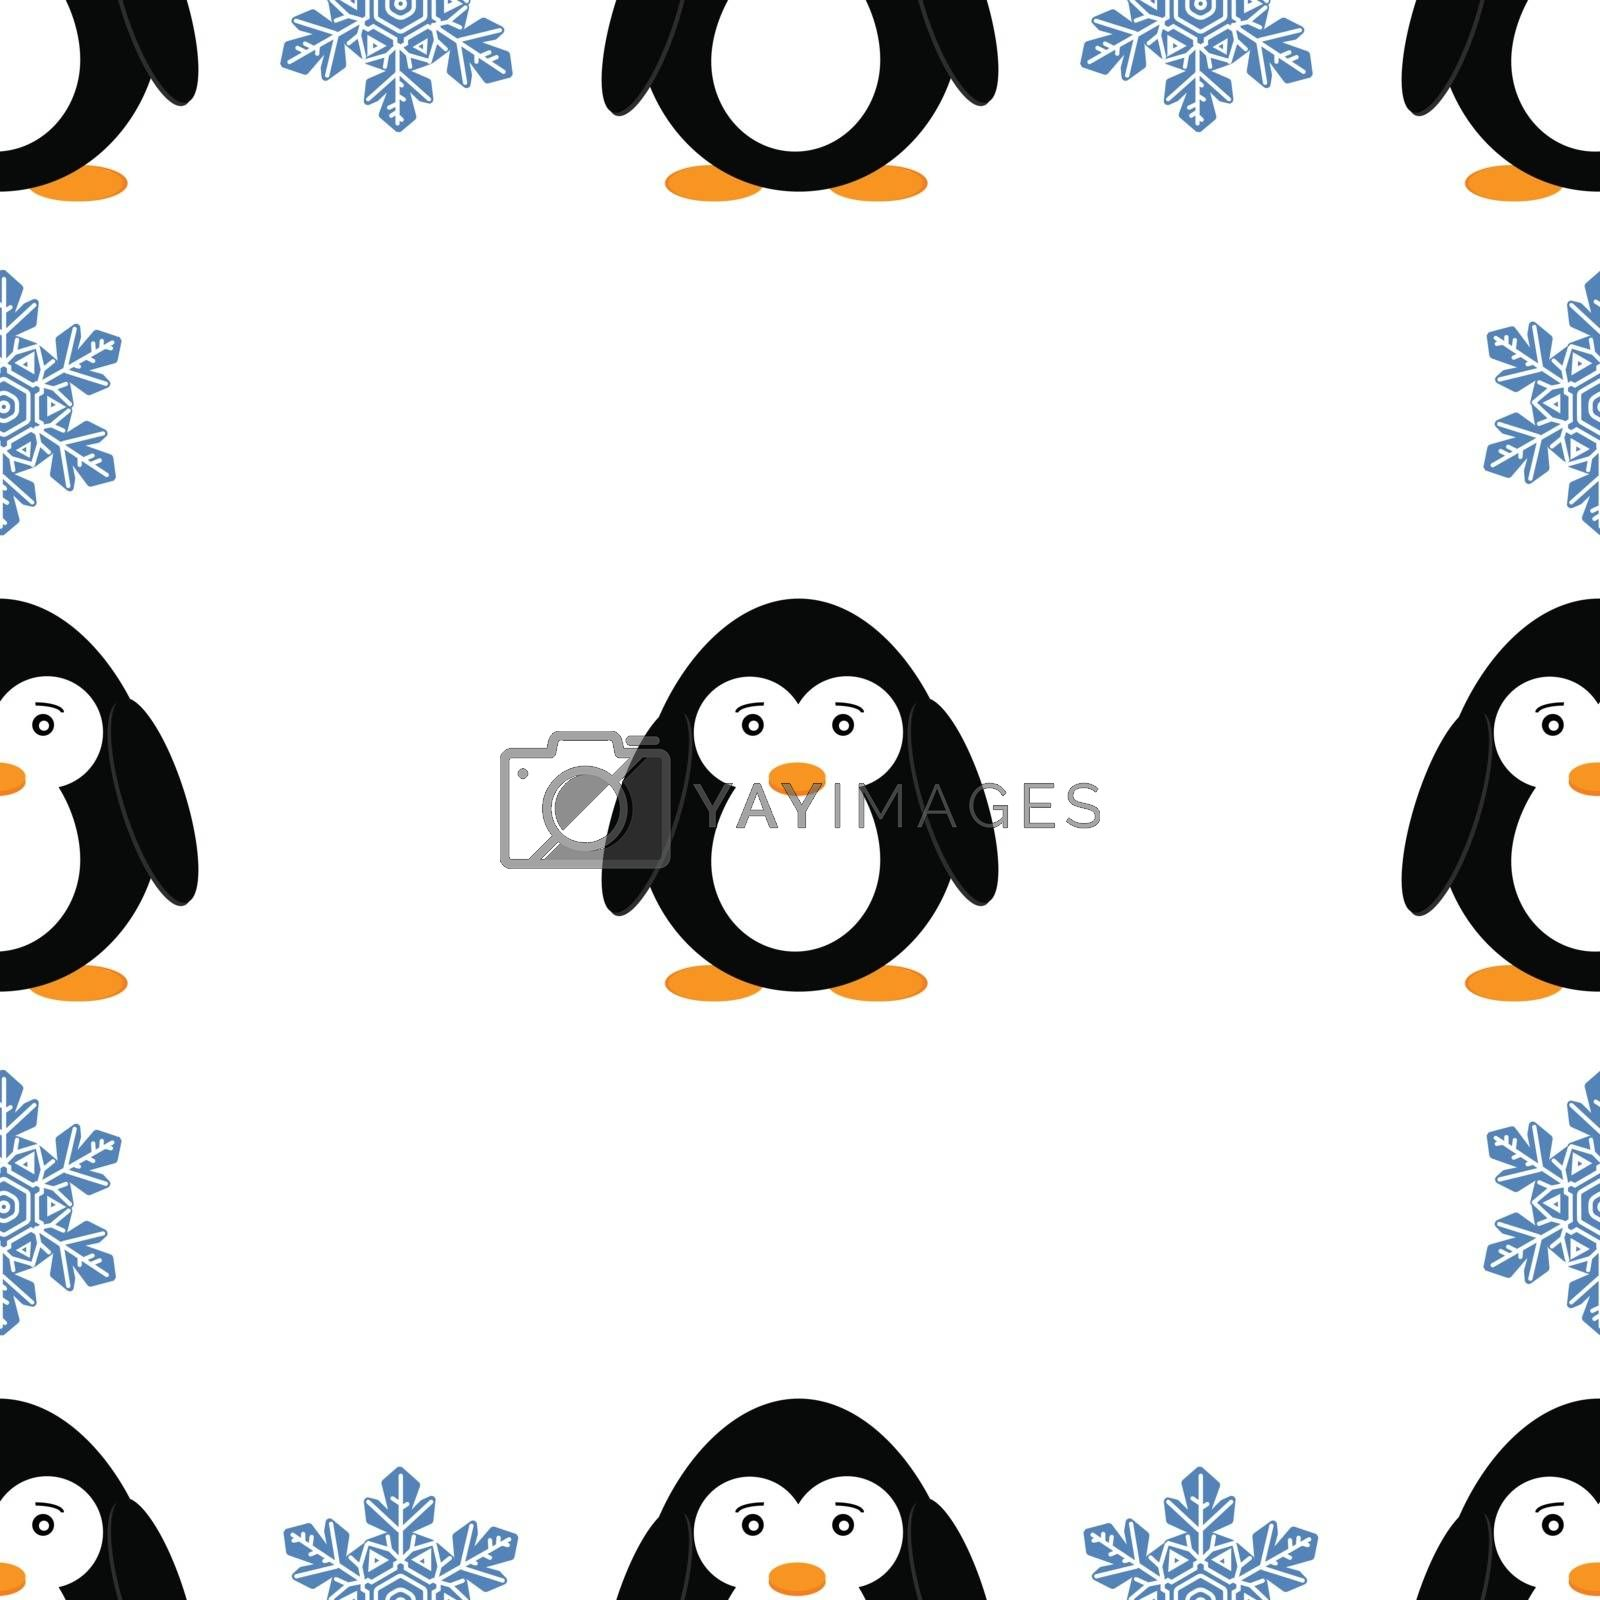 Seamless pattern with penguins and snowflakes. Cute penguin cartoon vector illustration. Winter animals pattern